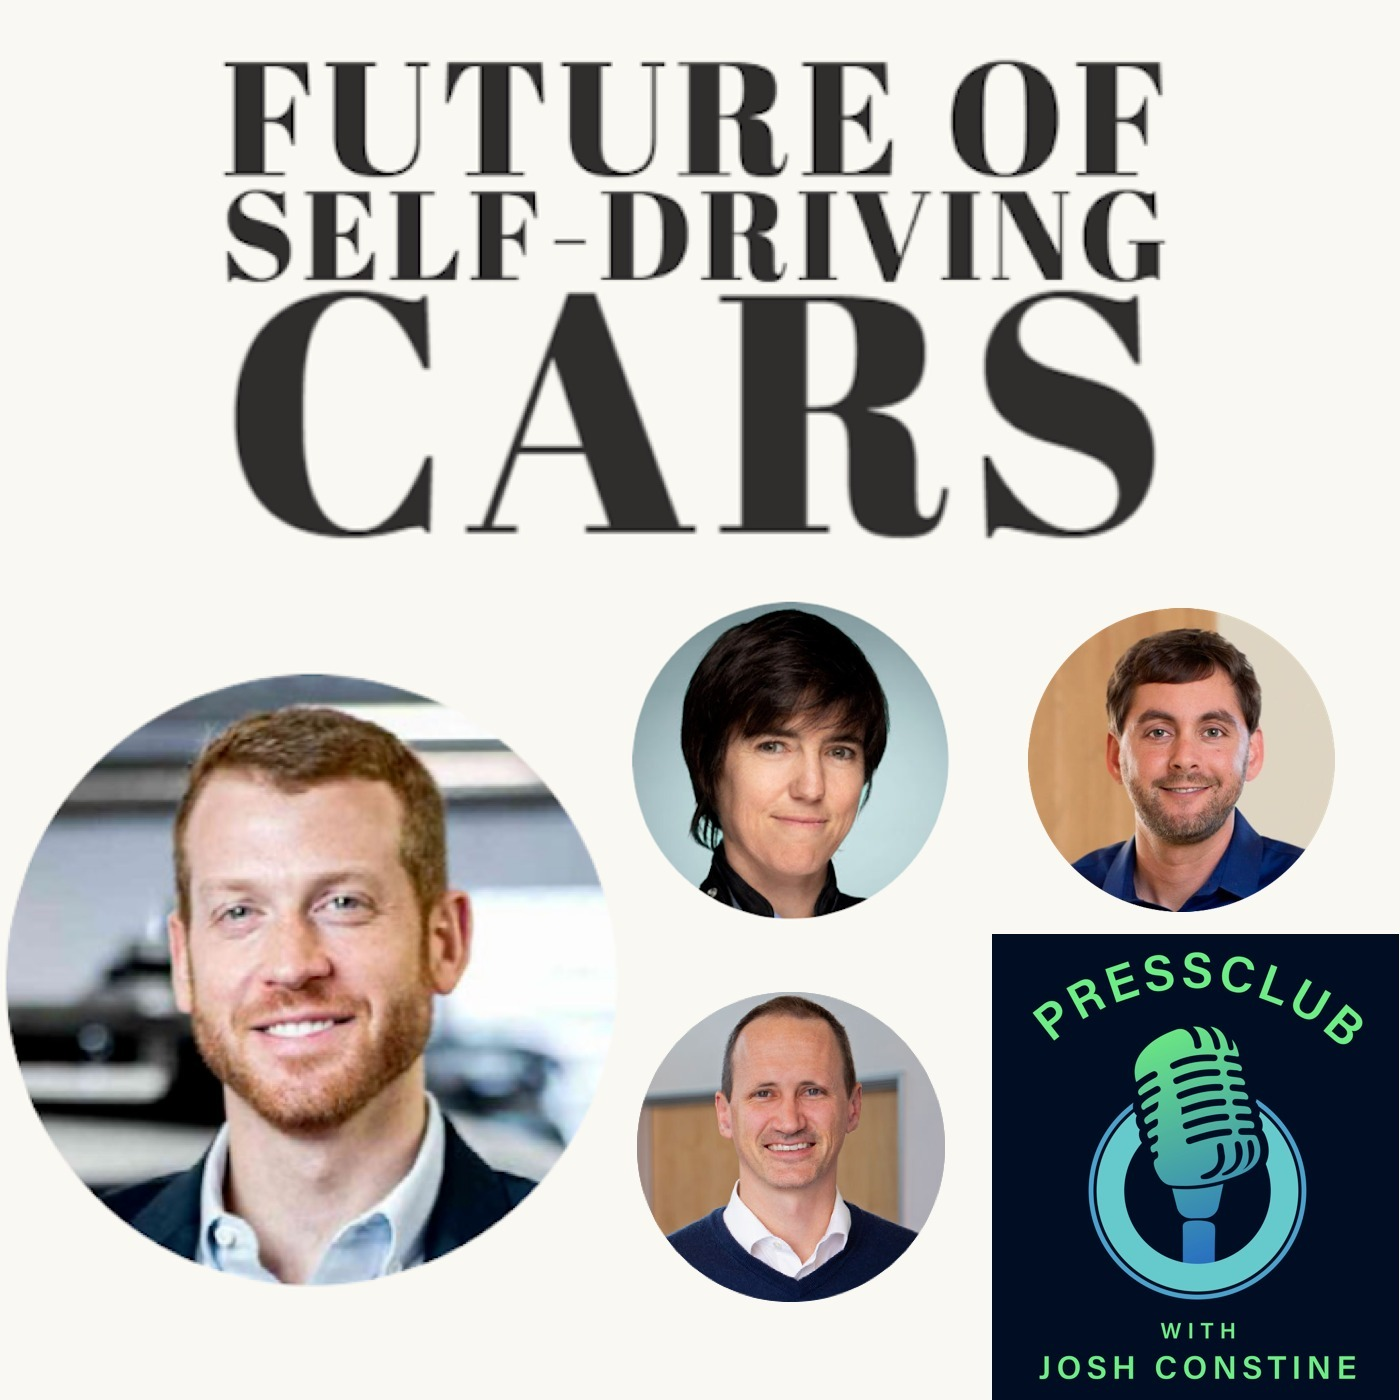 Future of Self-Driving Cars: When & how? Is Tesla Autopilot safe? With founders of Cruise, Zoox, Aurora, & Voyage plus ex-Uber & TechCrunch experts